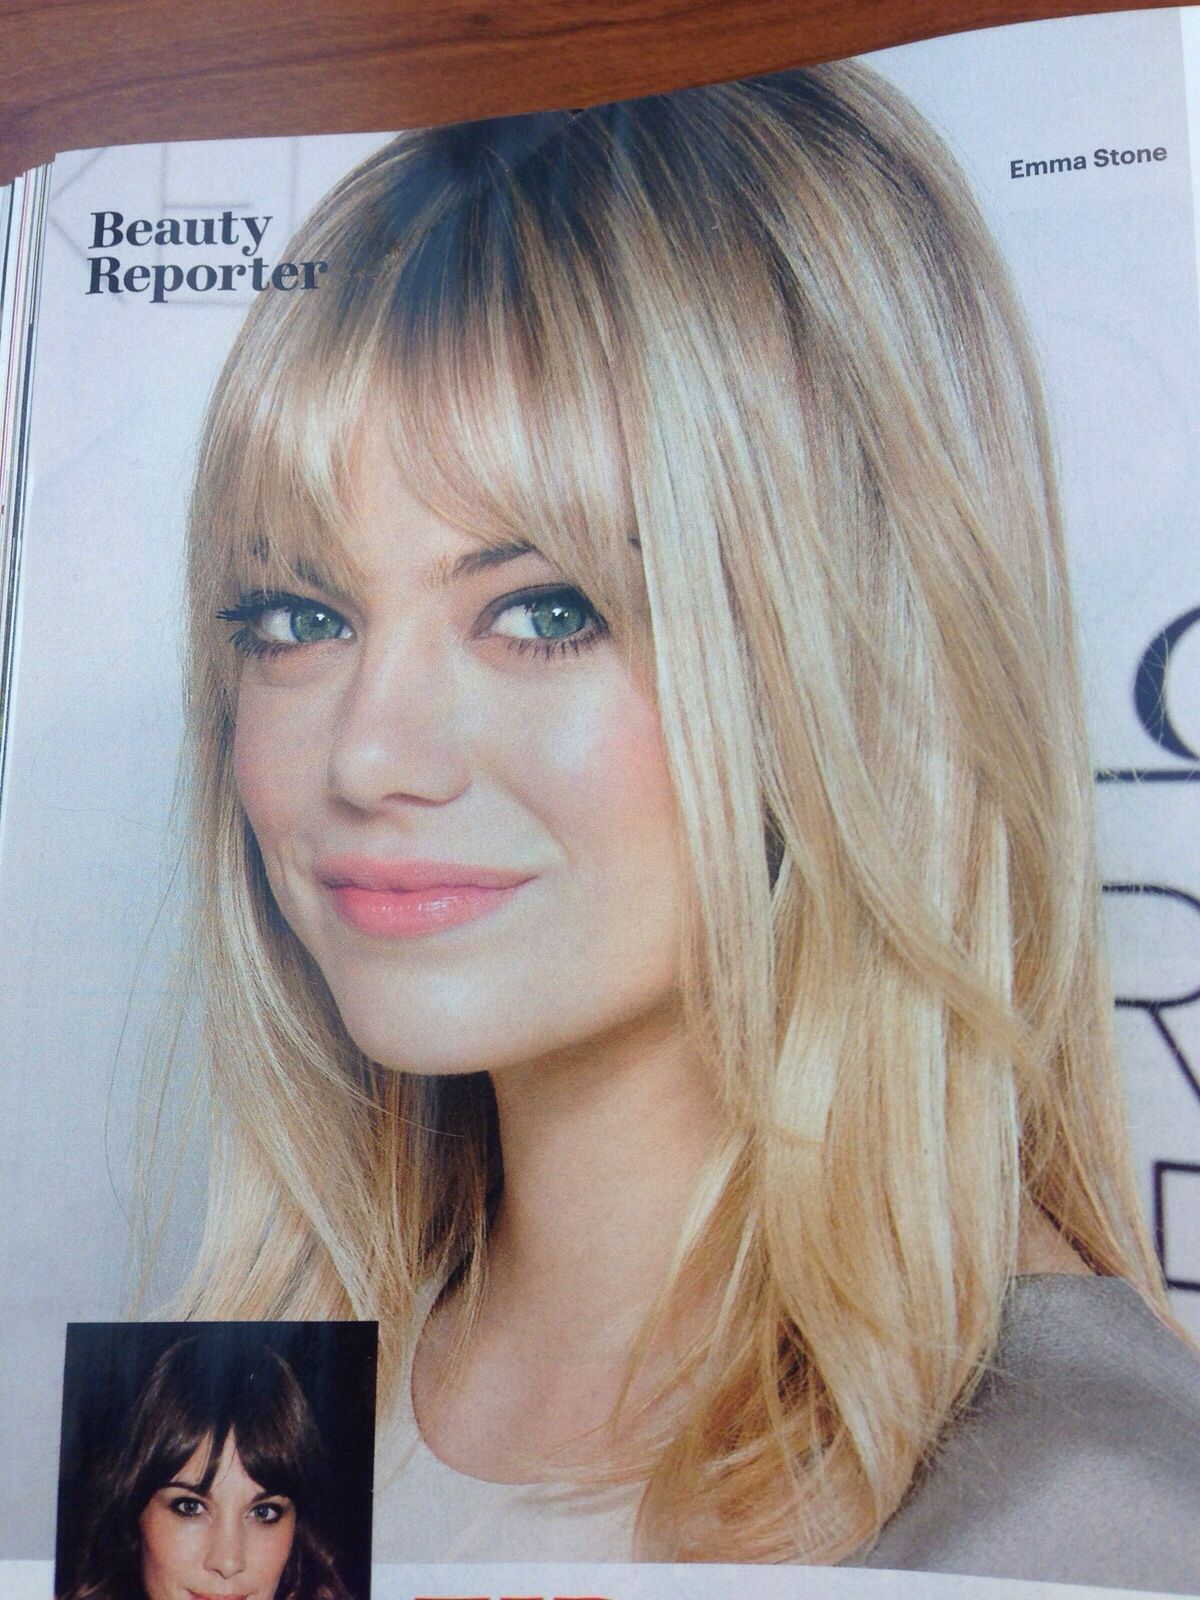 Beautiful as a Red head or a Blonde with bangs...Emma Stone can wear both beautifully.